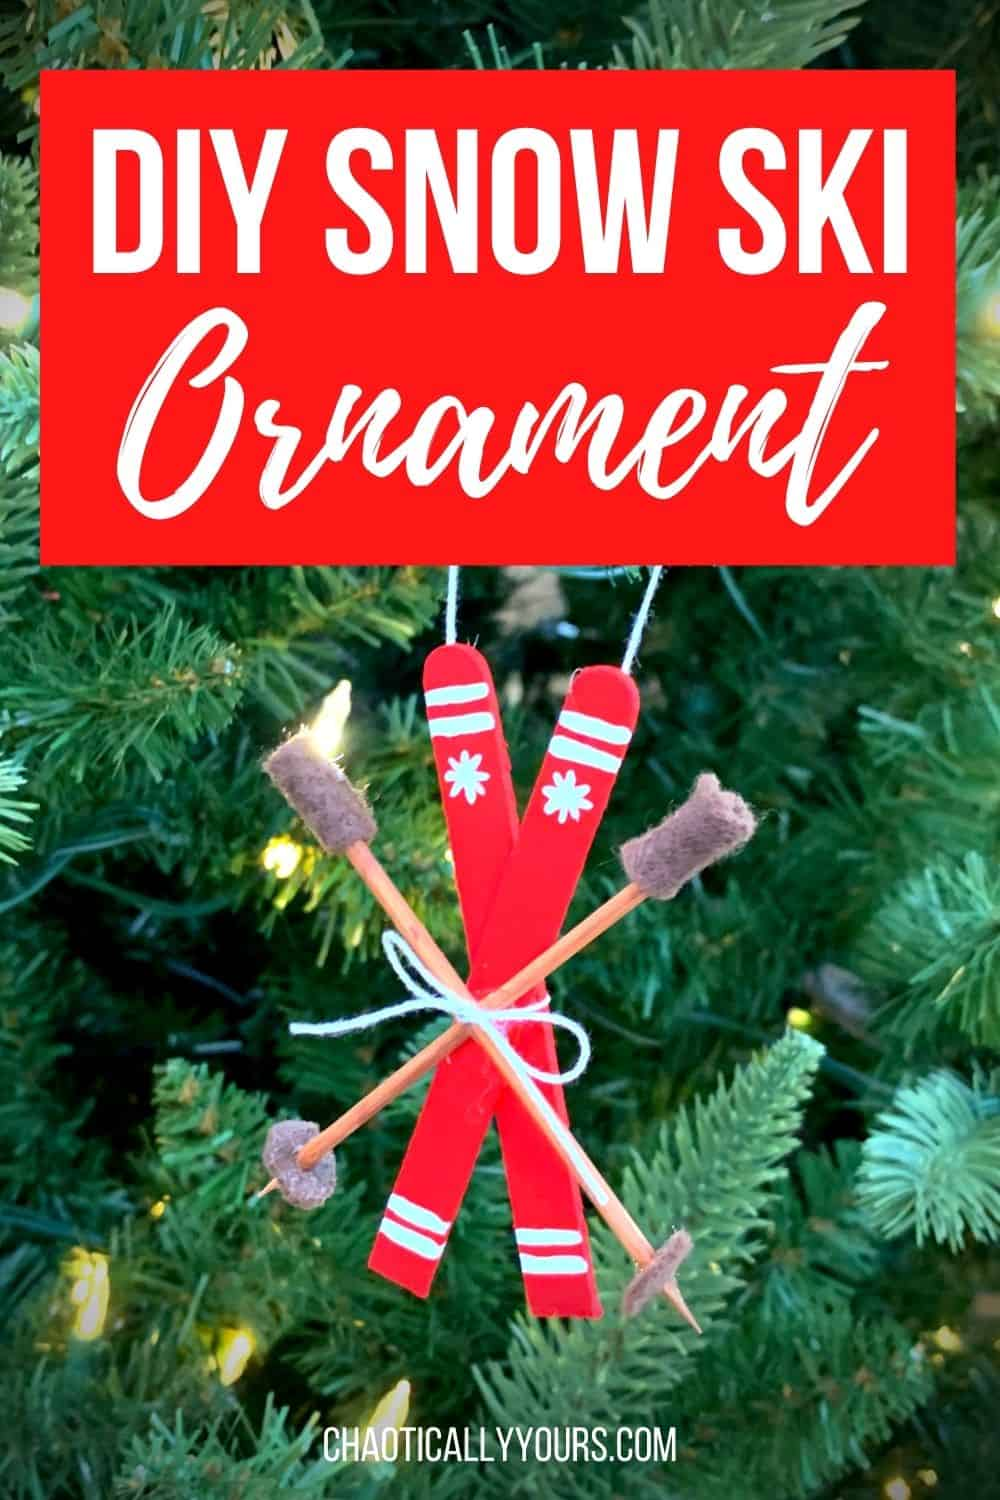 DIY Snow Ski Ornament Pin Image